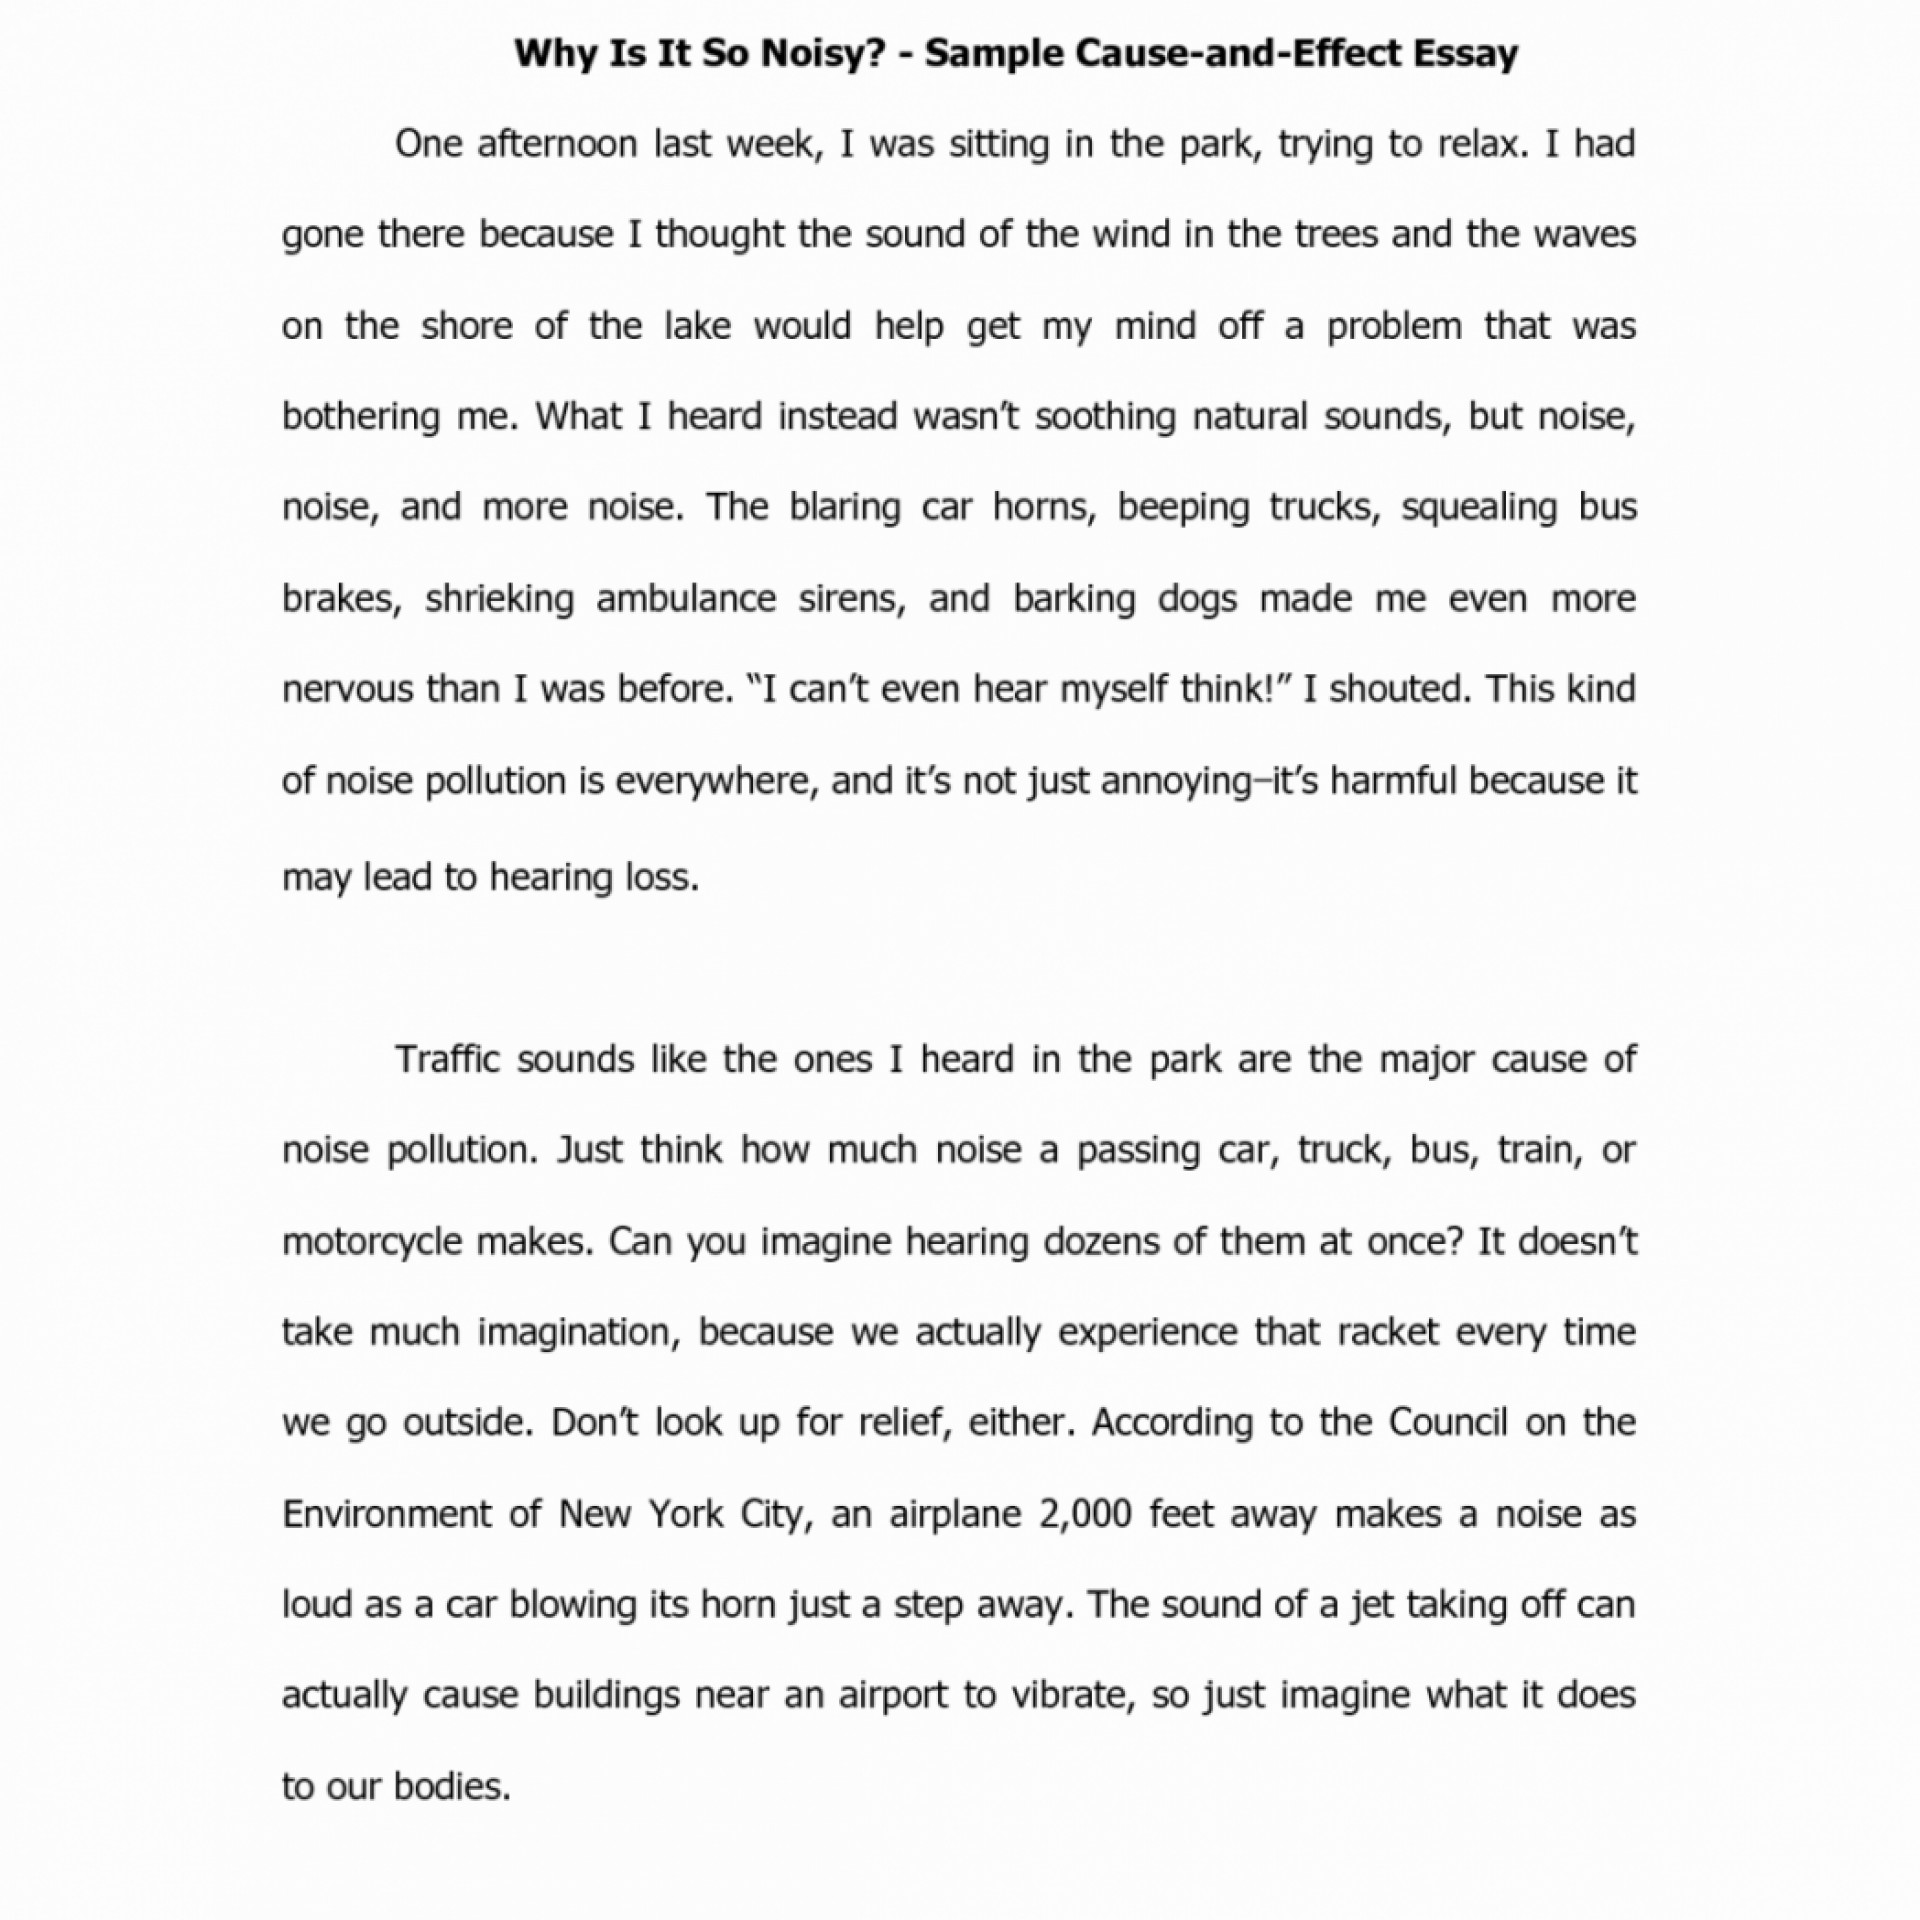 027 Cause And Effect Essays Format Best Of For Or Good Cover Bystander Domino Analysis Ielts Free 6th Grade College Pdf Middle School 1048x1048 Amazing Essay Examples 4th Divorce 1920